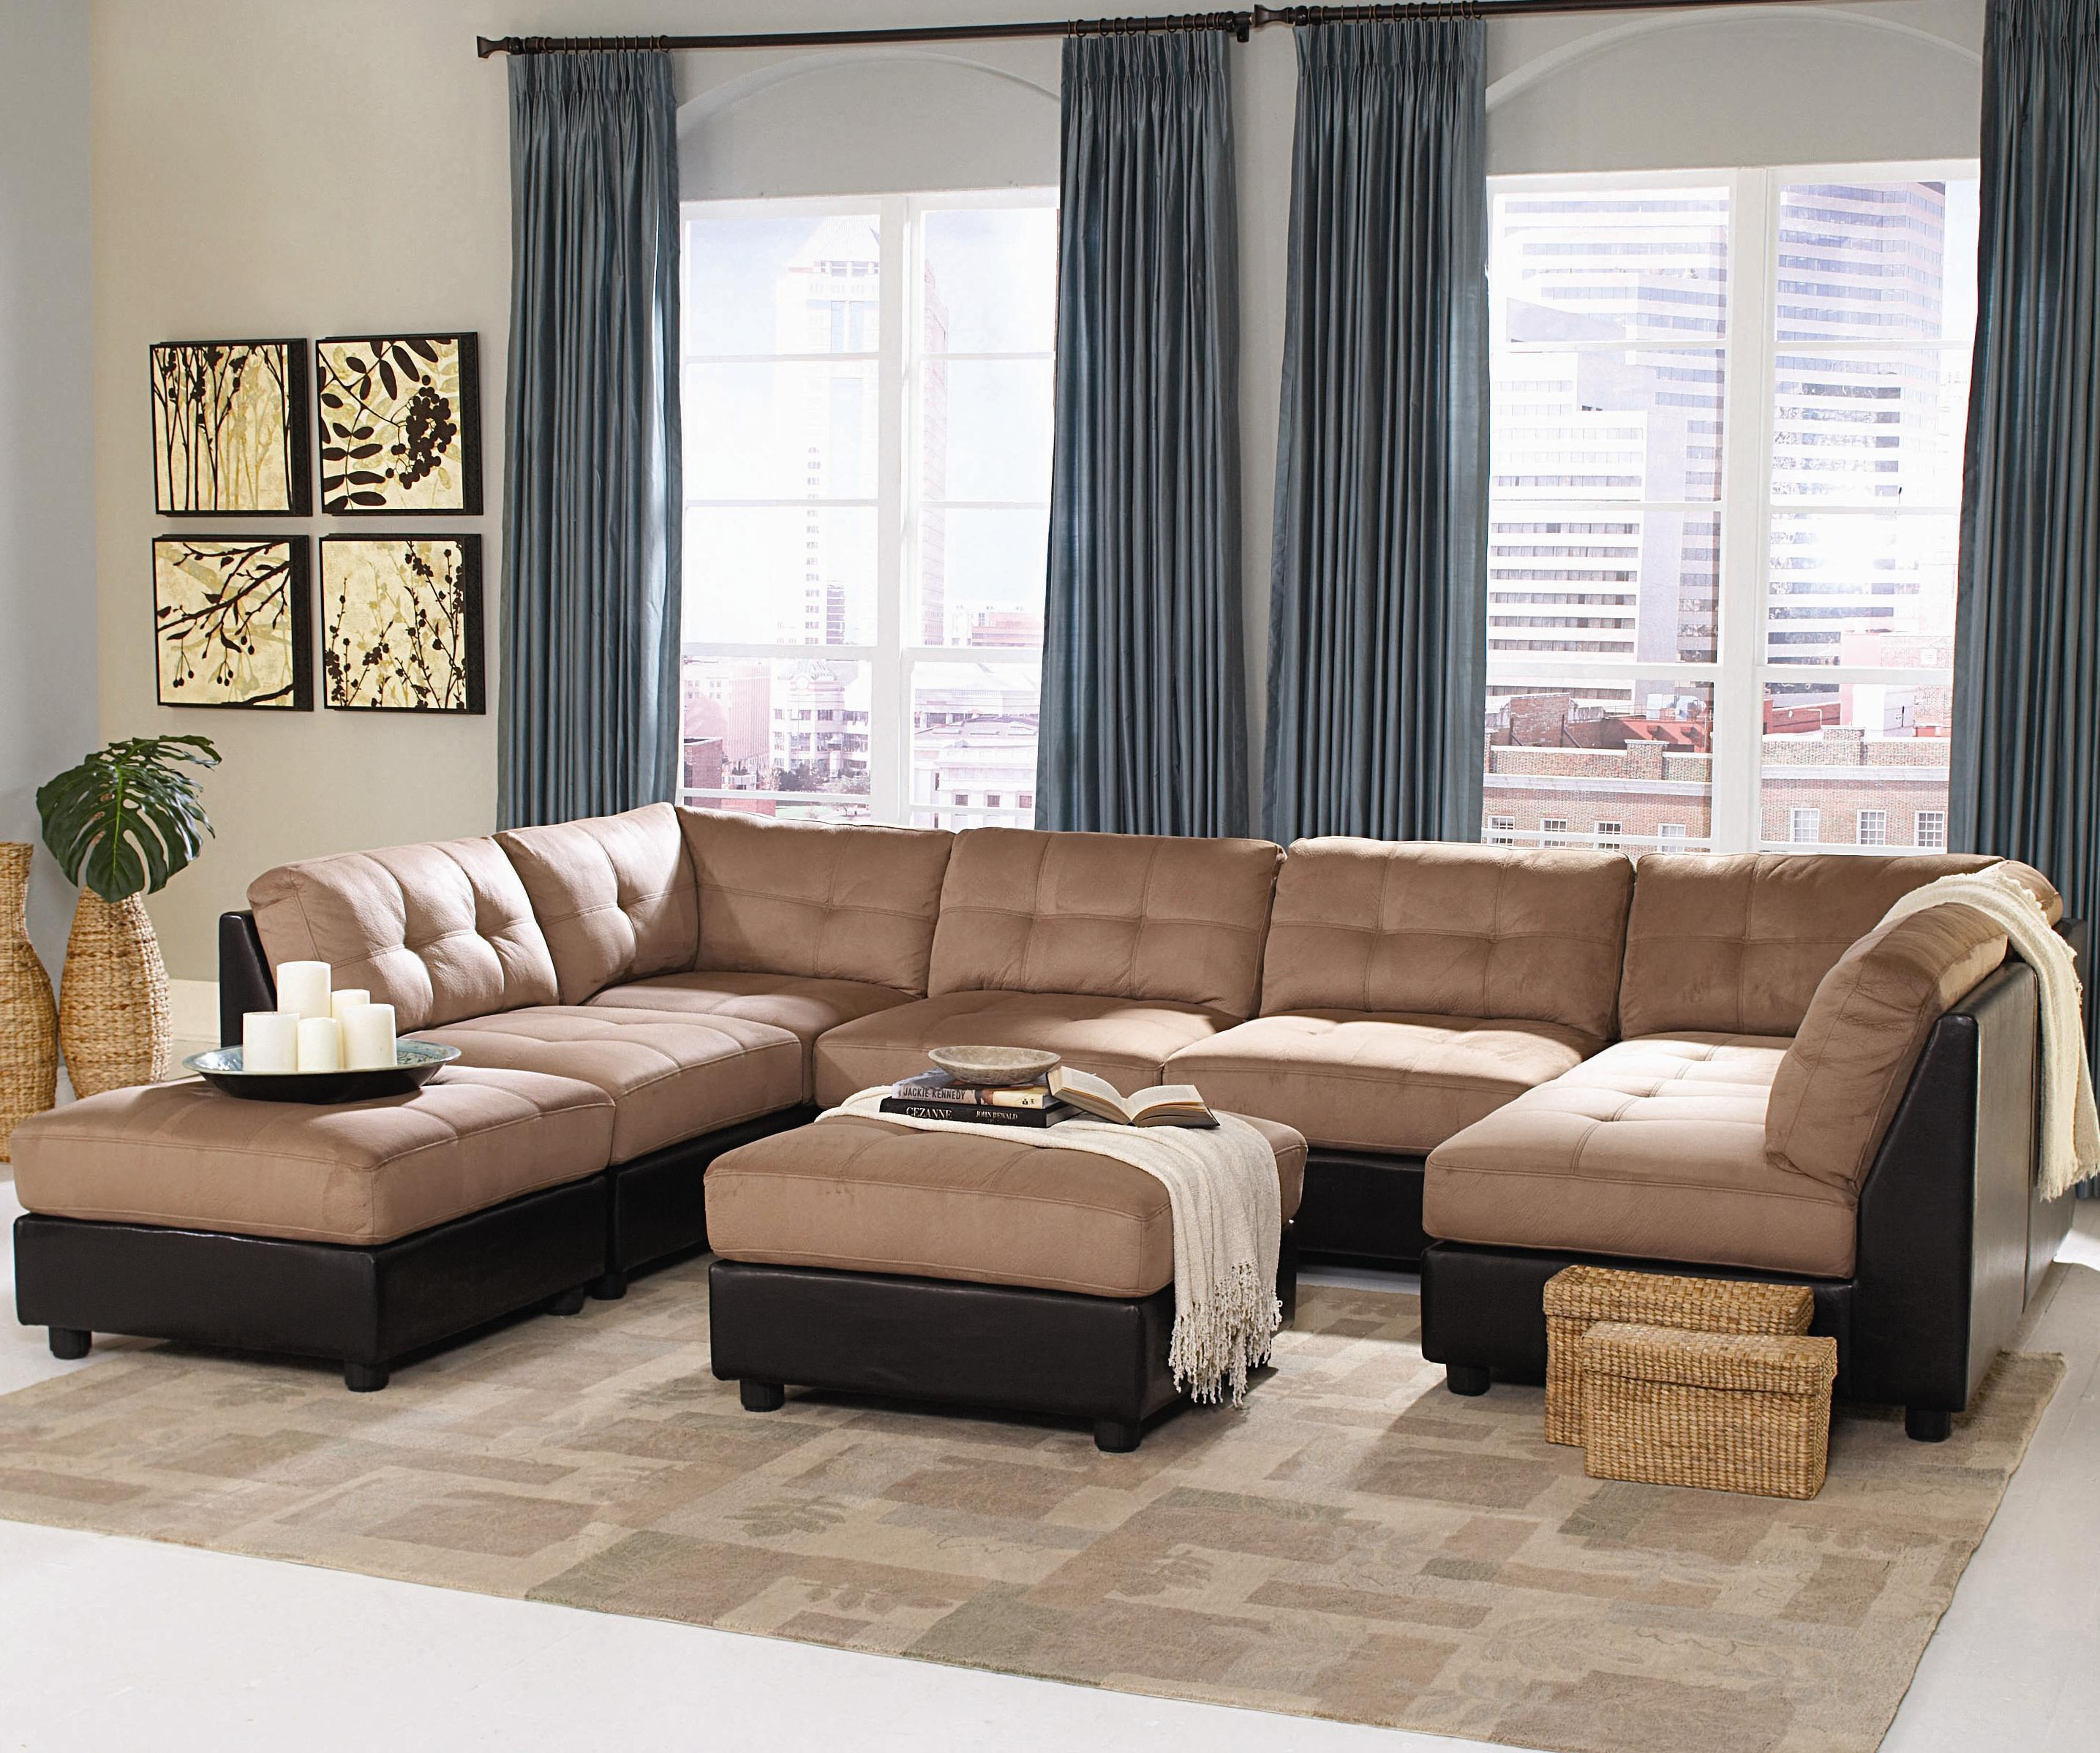 bedroom sectionals tan canada recliners oversized of chair u also awesome shape and shaped gallery design living pictures sectional leons with room couch